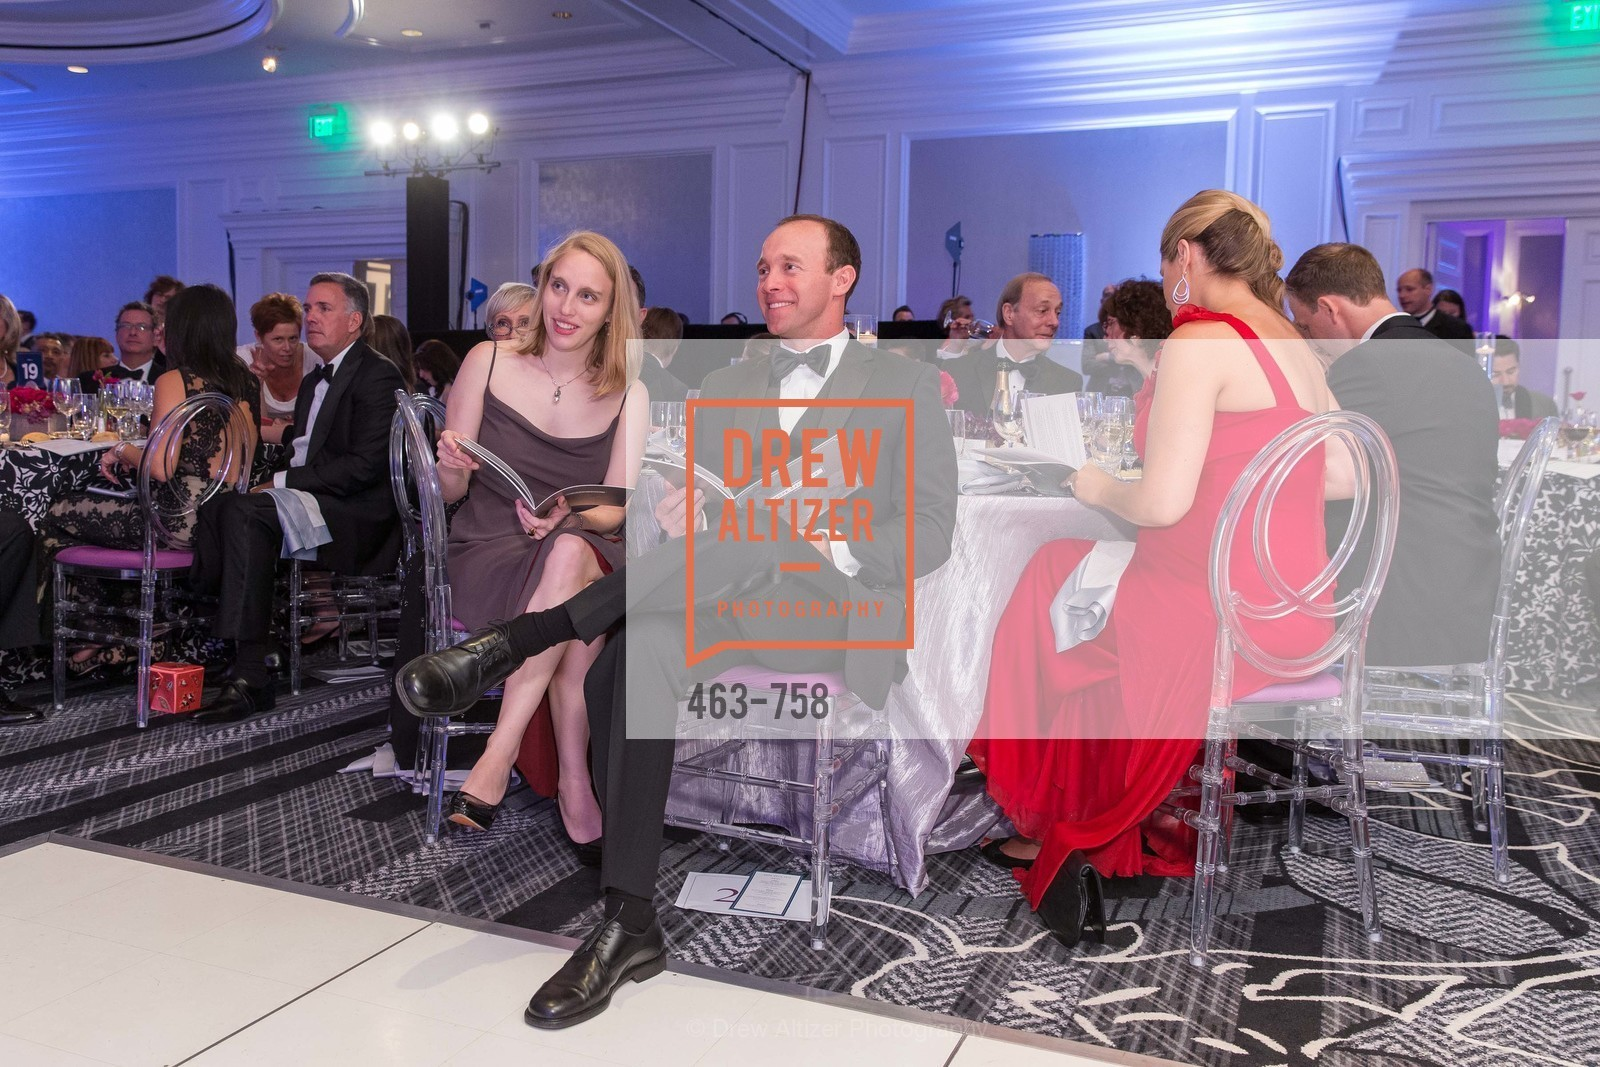 Piper Sagan, Trevor Sagan, JUVENILE DIABETES RESEARCH FOUNDATION  Hope Gala, US, May 30th, 2015,Drew Altizer, Drew Altizer Photography, full-service agency, private events, San Francisco photographer, photographer california